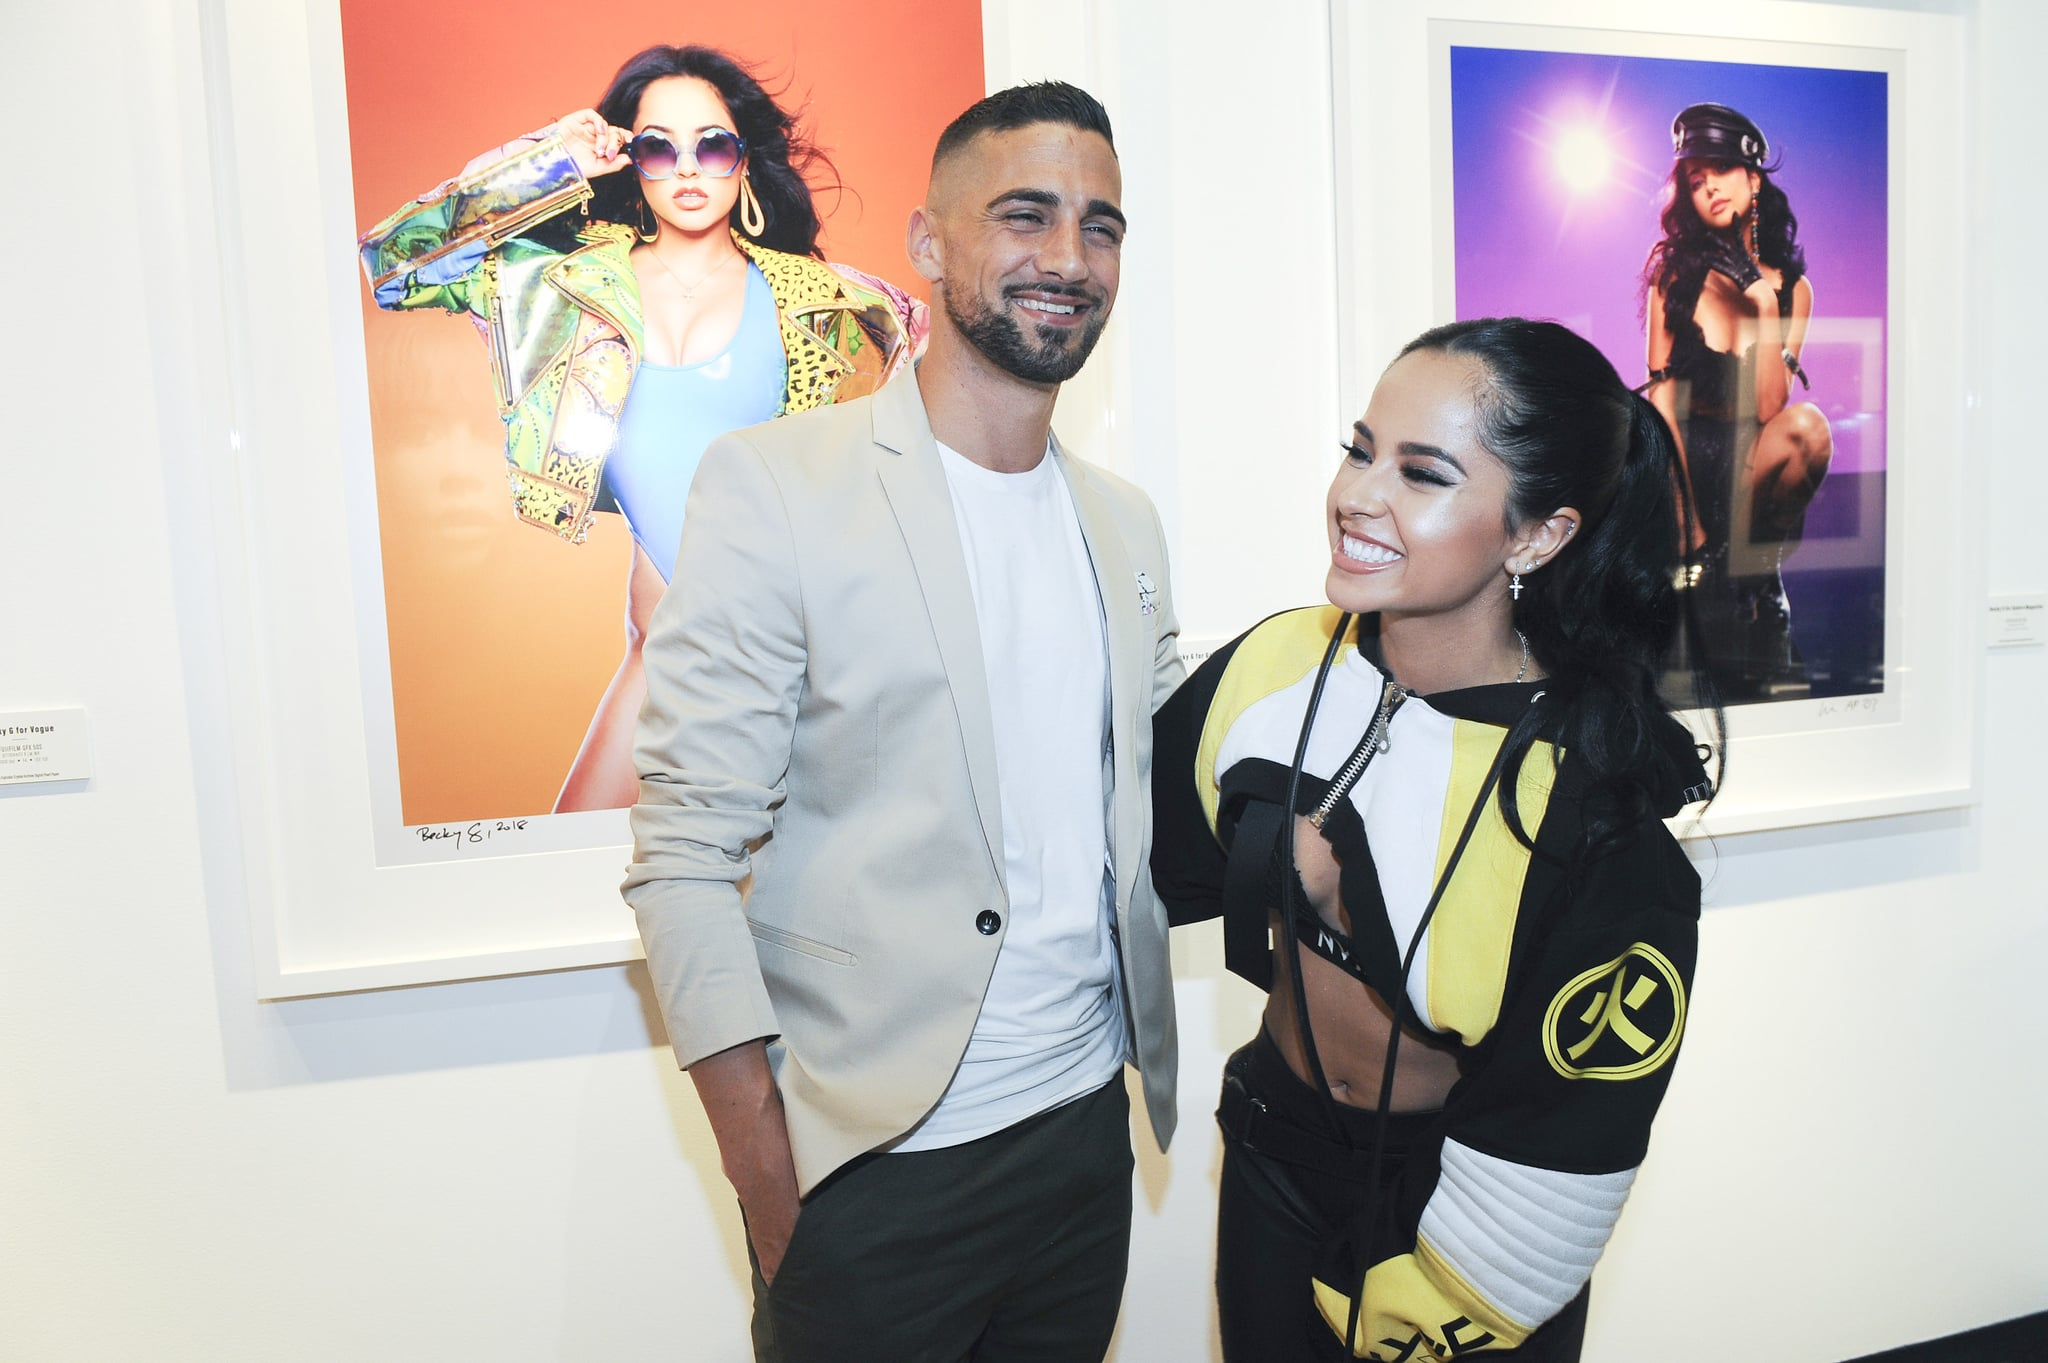 LOS ANGELES, CA - JUNE 14:  Sebastian Lletget and Becky G attend the 2000s Exhibition Opening at Mouche Gallery, Sponsored by Fujifilm on June 14, 2018 in Los Angeles, California. (Photo by Amy Graves/Getty Images for CPM)